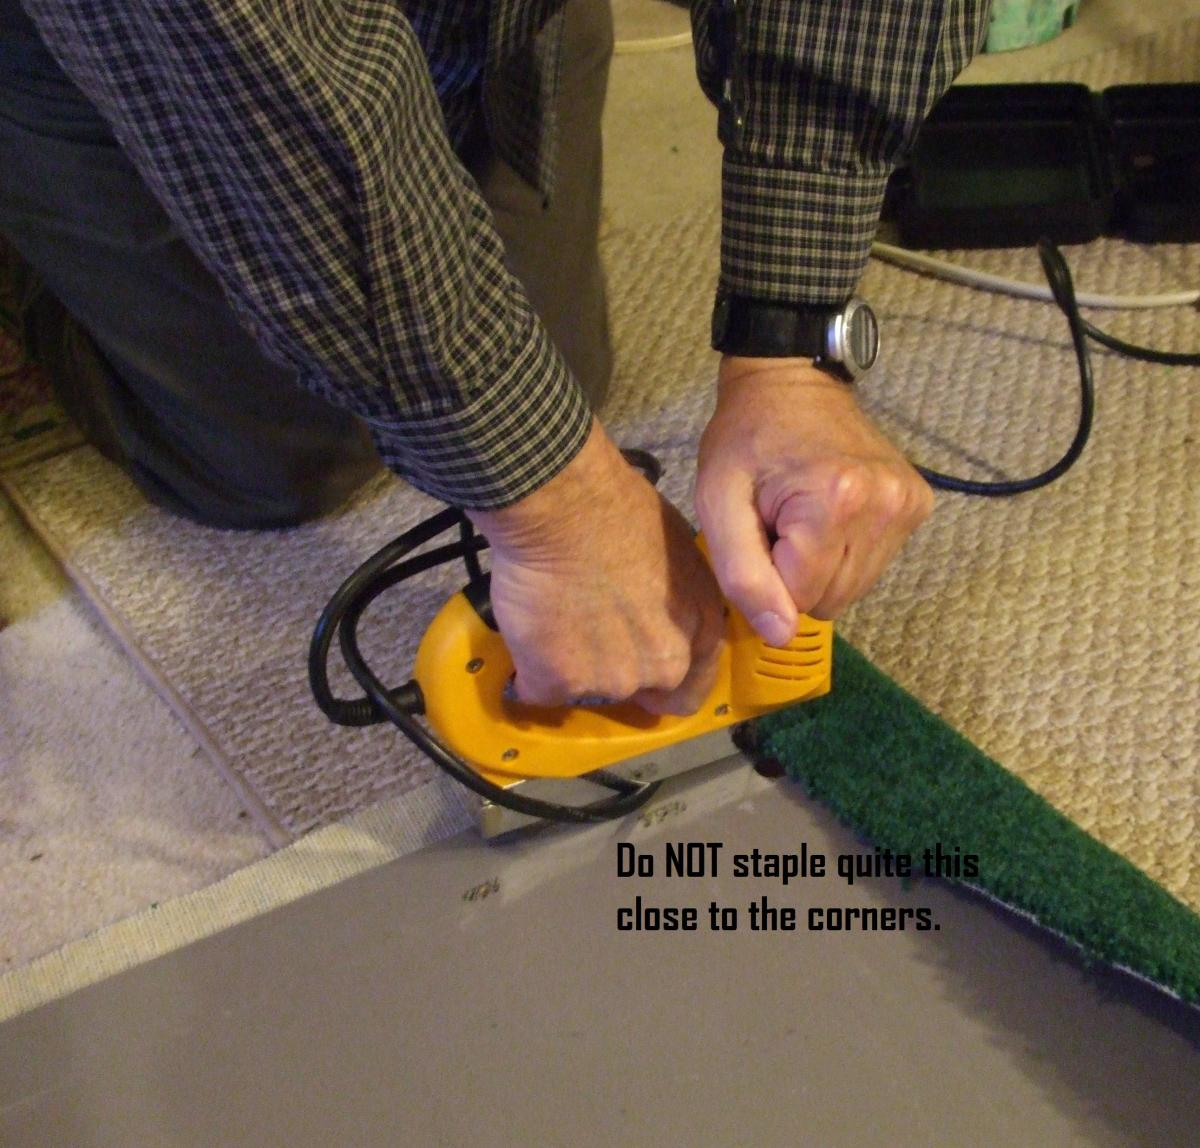 A staple gun beats the old-fashioned carpet tack and hammer system.